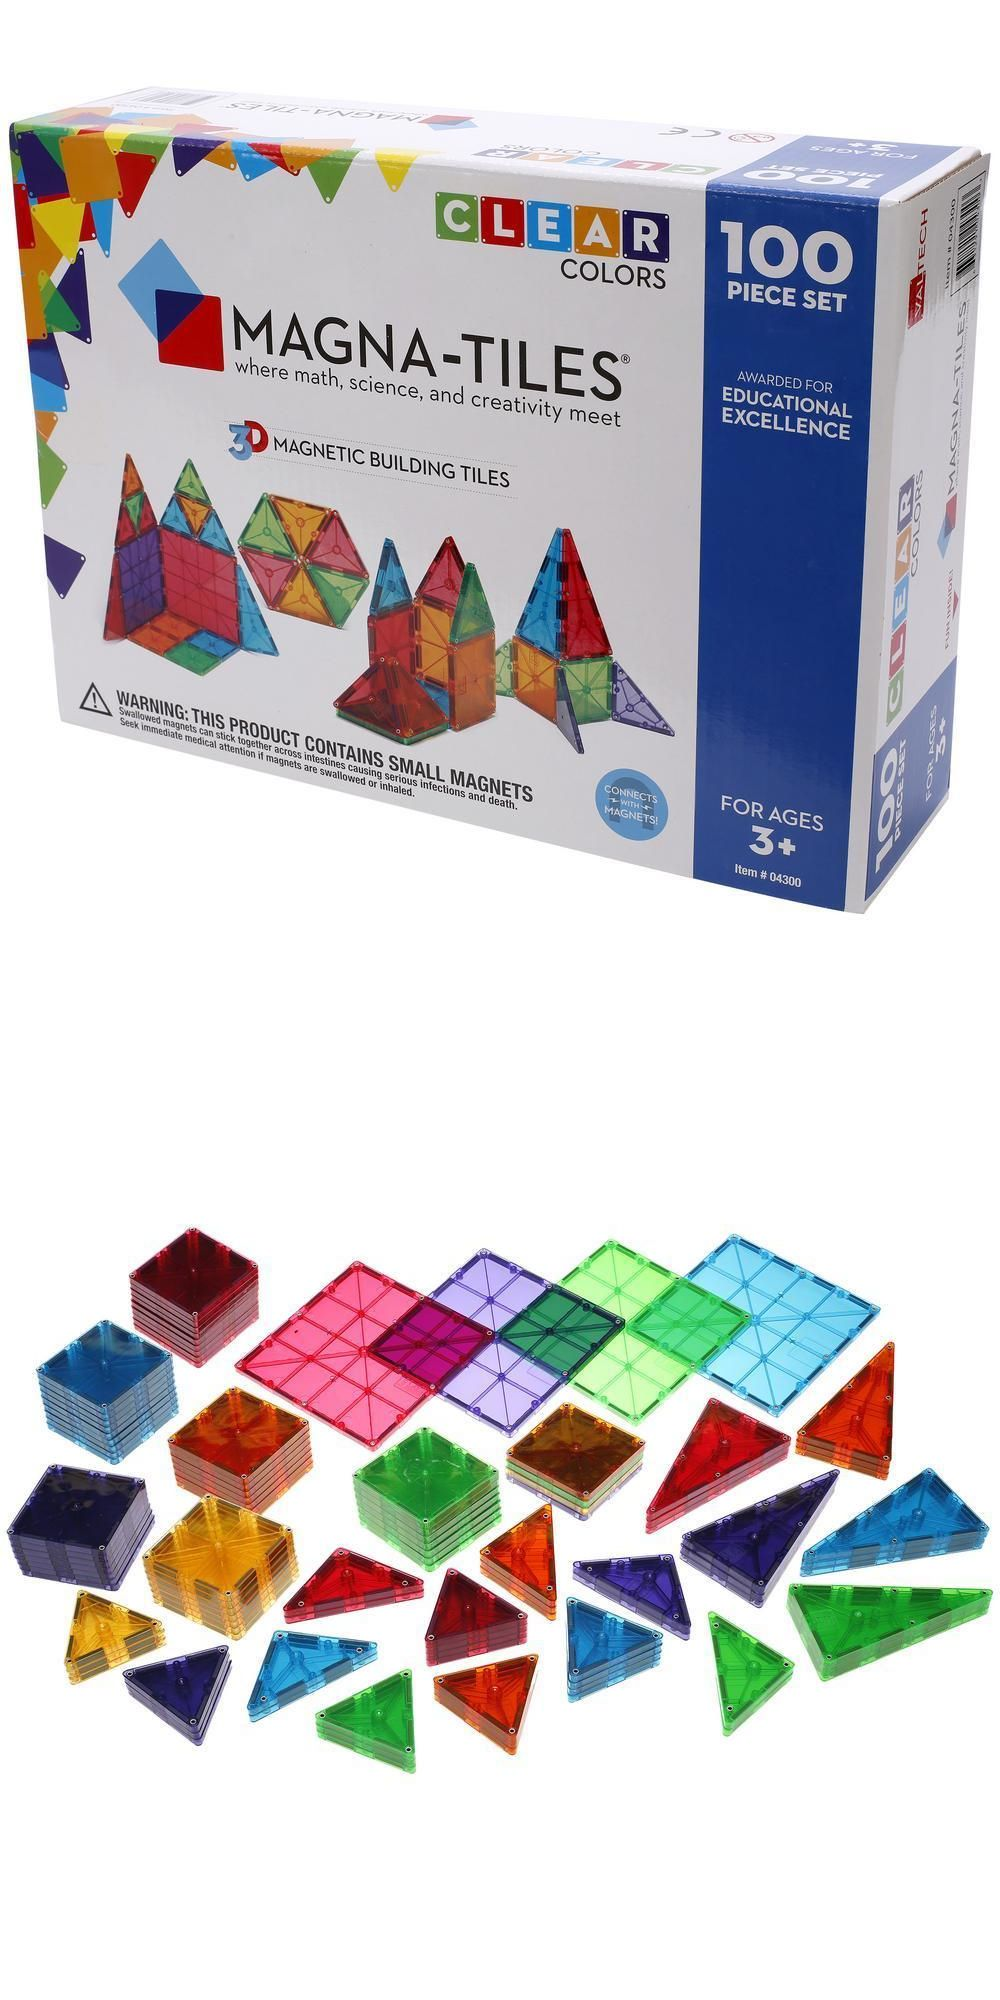 Building Toy Sets And Packs 258040 Magna Tiles Clear Colors 100 Piece Building Set Buy It Now Only 89 On Magna Tiles Magnetic Building Tiles Plan Toys